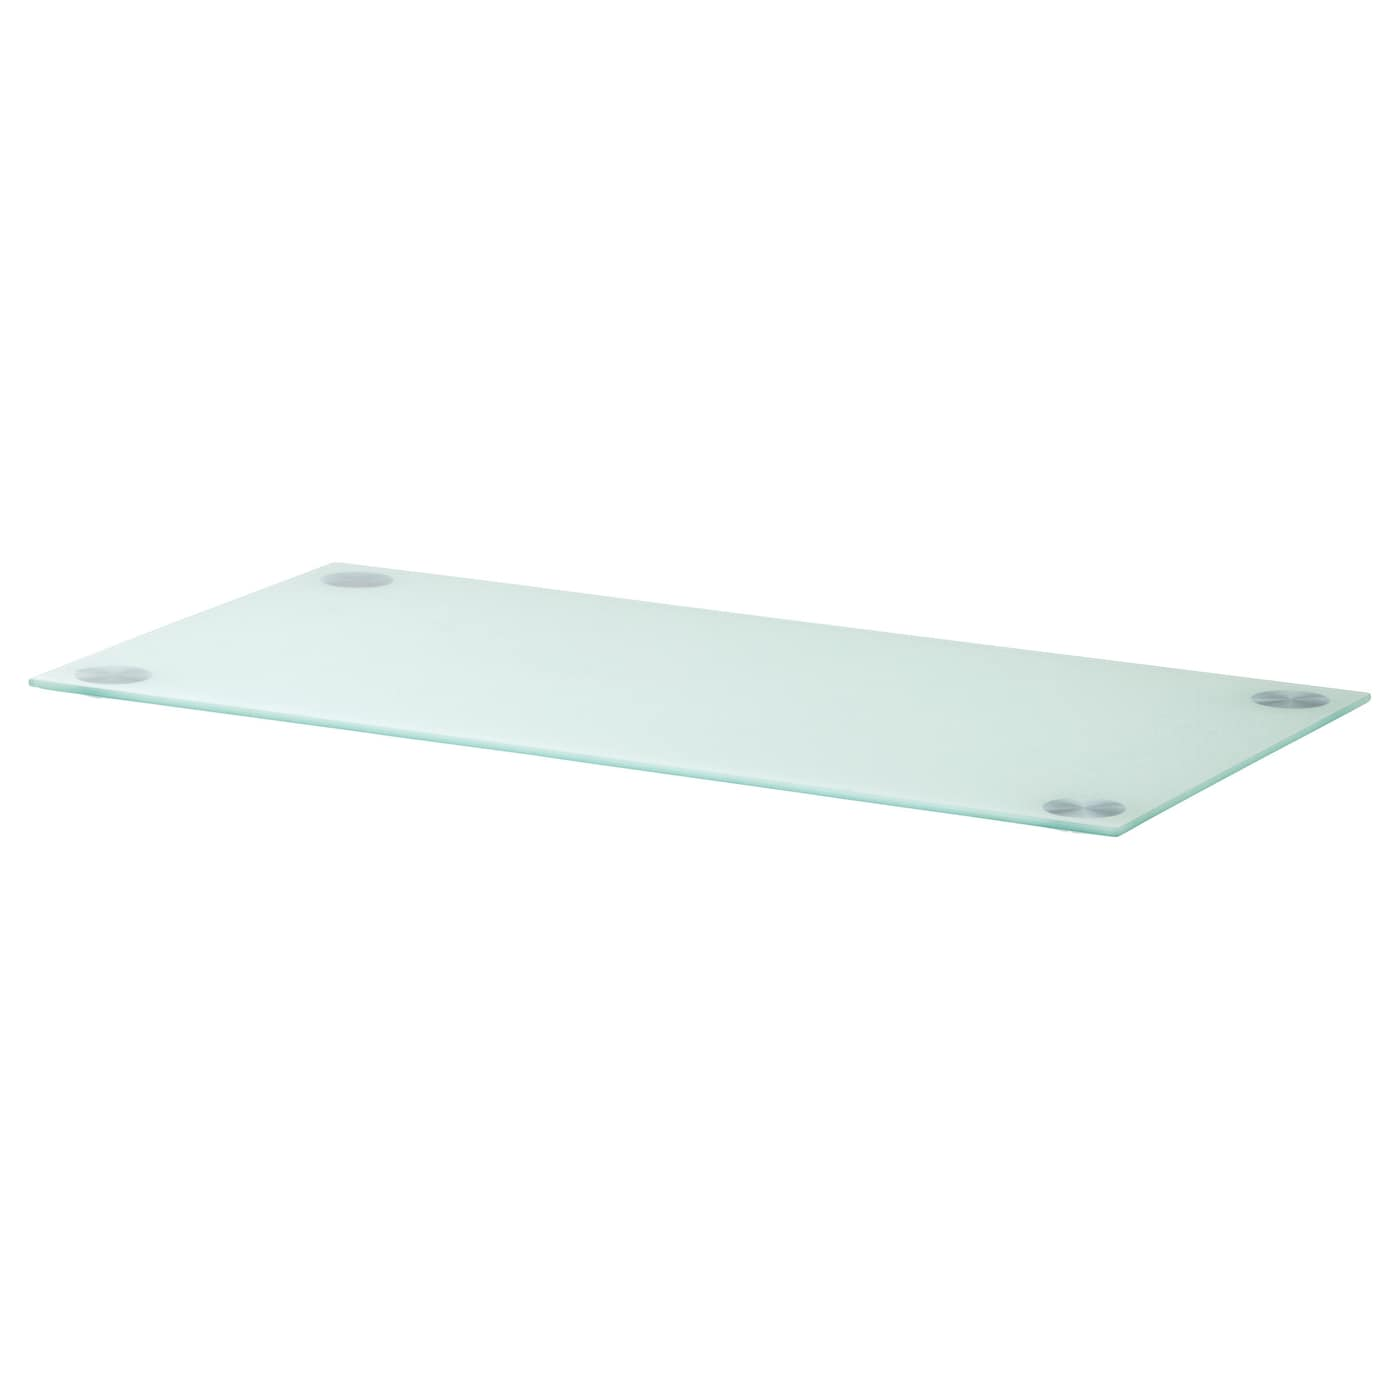 Ikea glass table top - Ikea Glasholm Table Top The Table Top In Tempered Glass Is Stain Resistant And Easy To